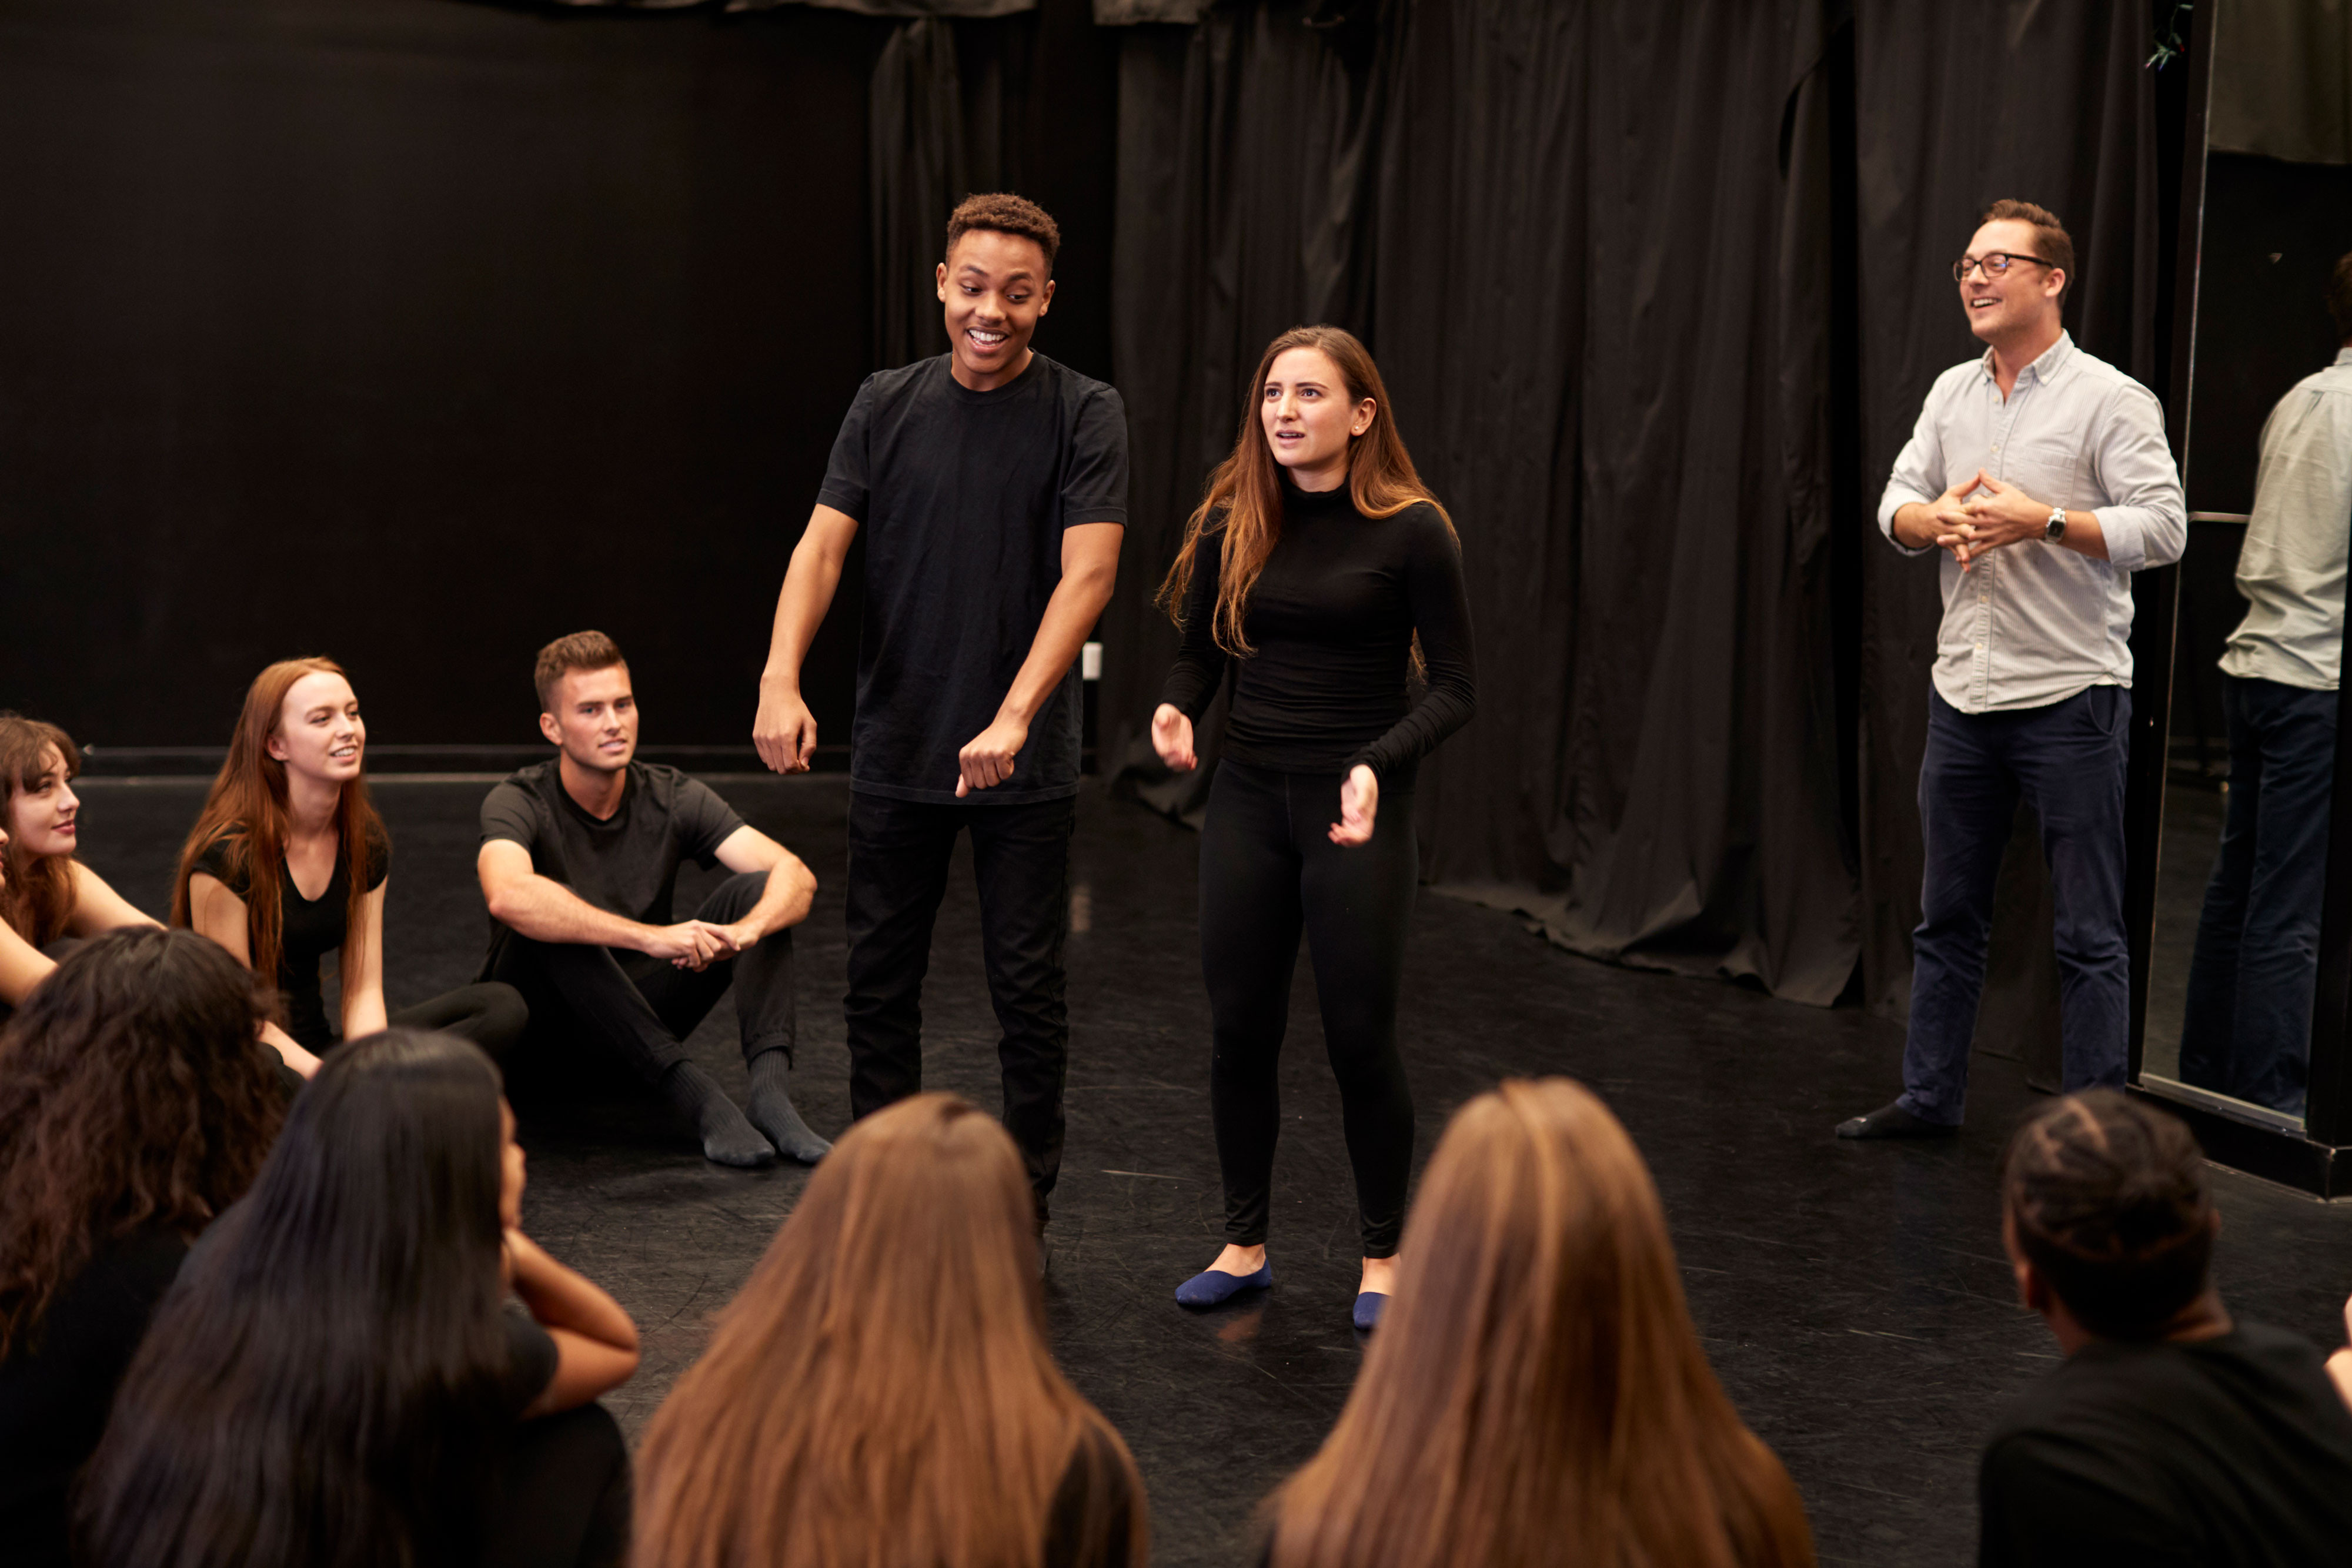 Take The Drama Out Of Branson Theater Trips - Theater Group performing